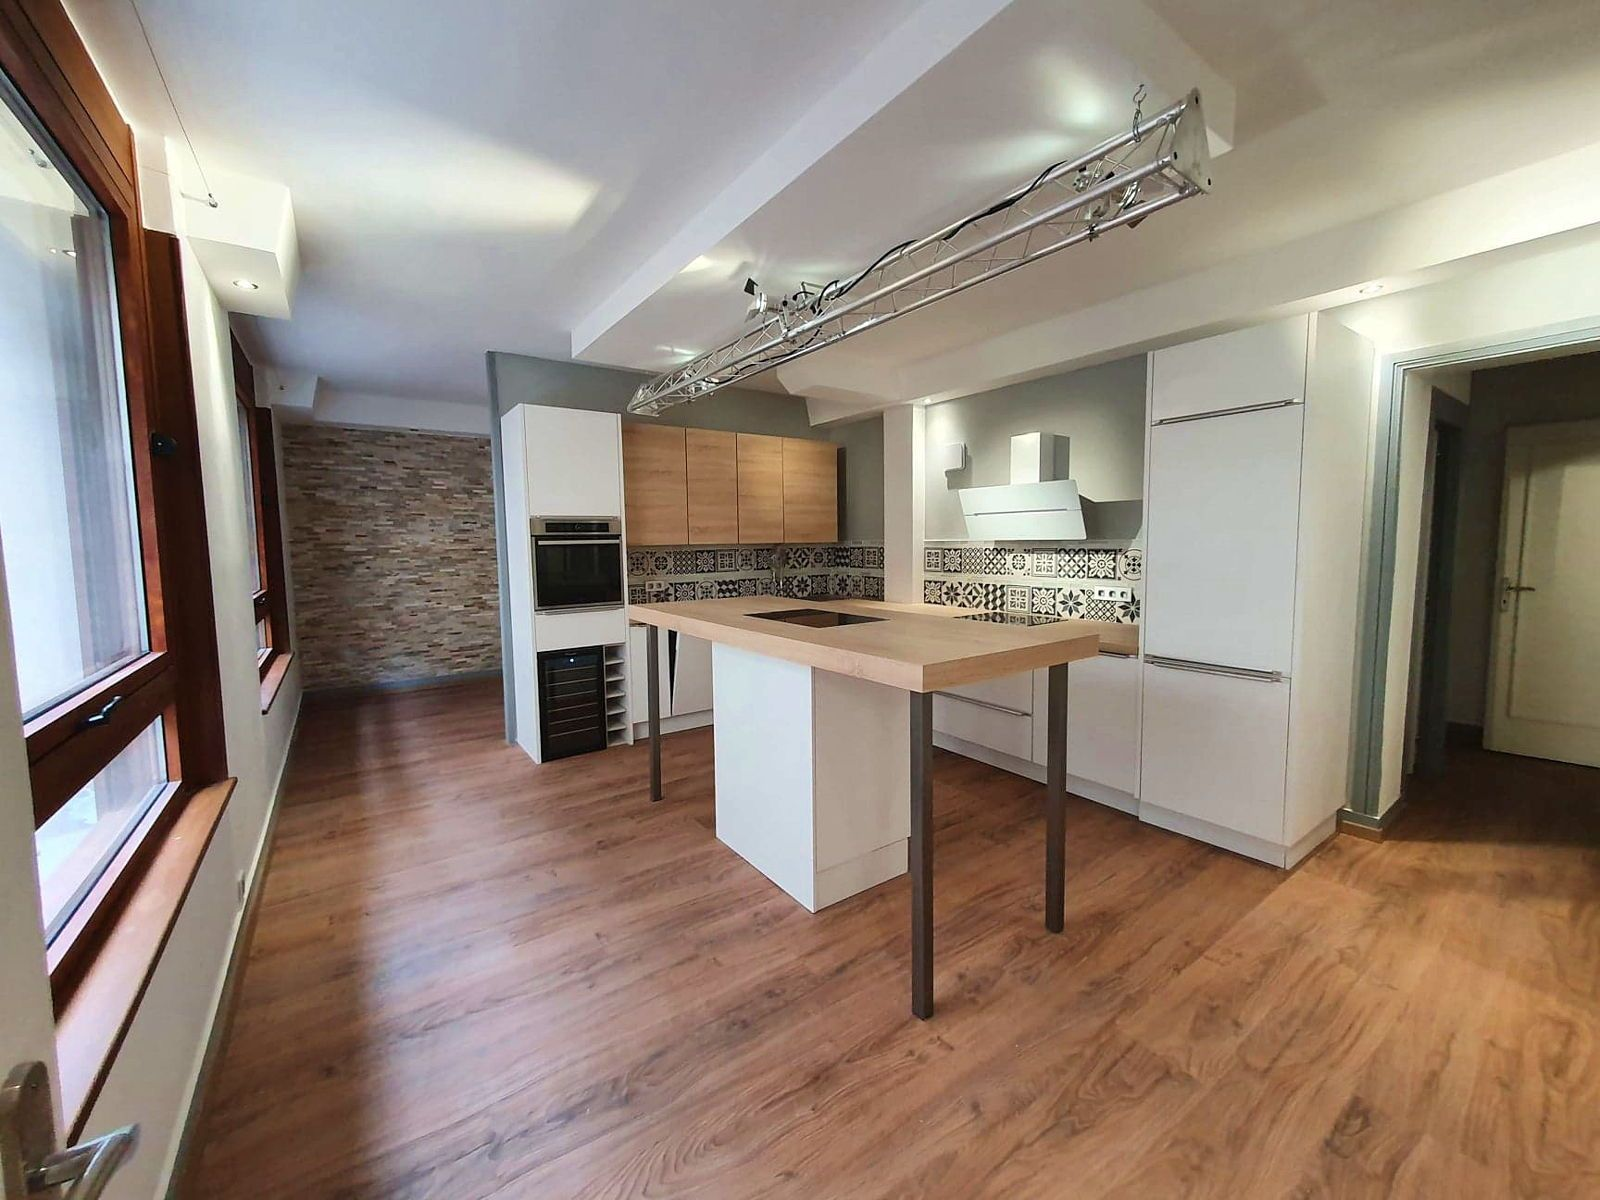 Vends appartement T6, 160m², Clermont-Ferrand - Triangle d'Or (63)